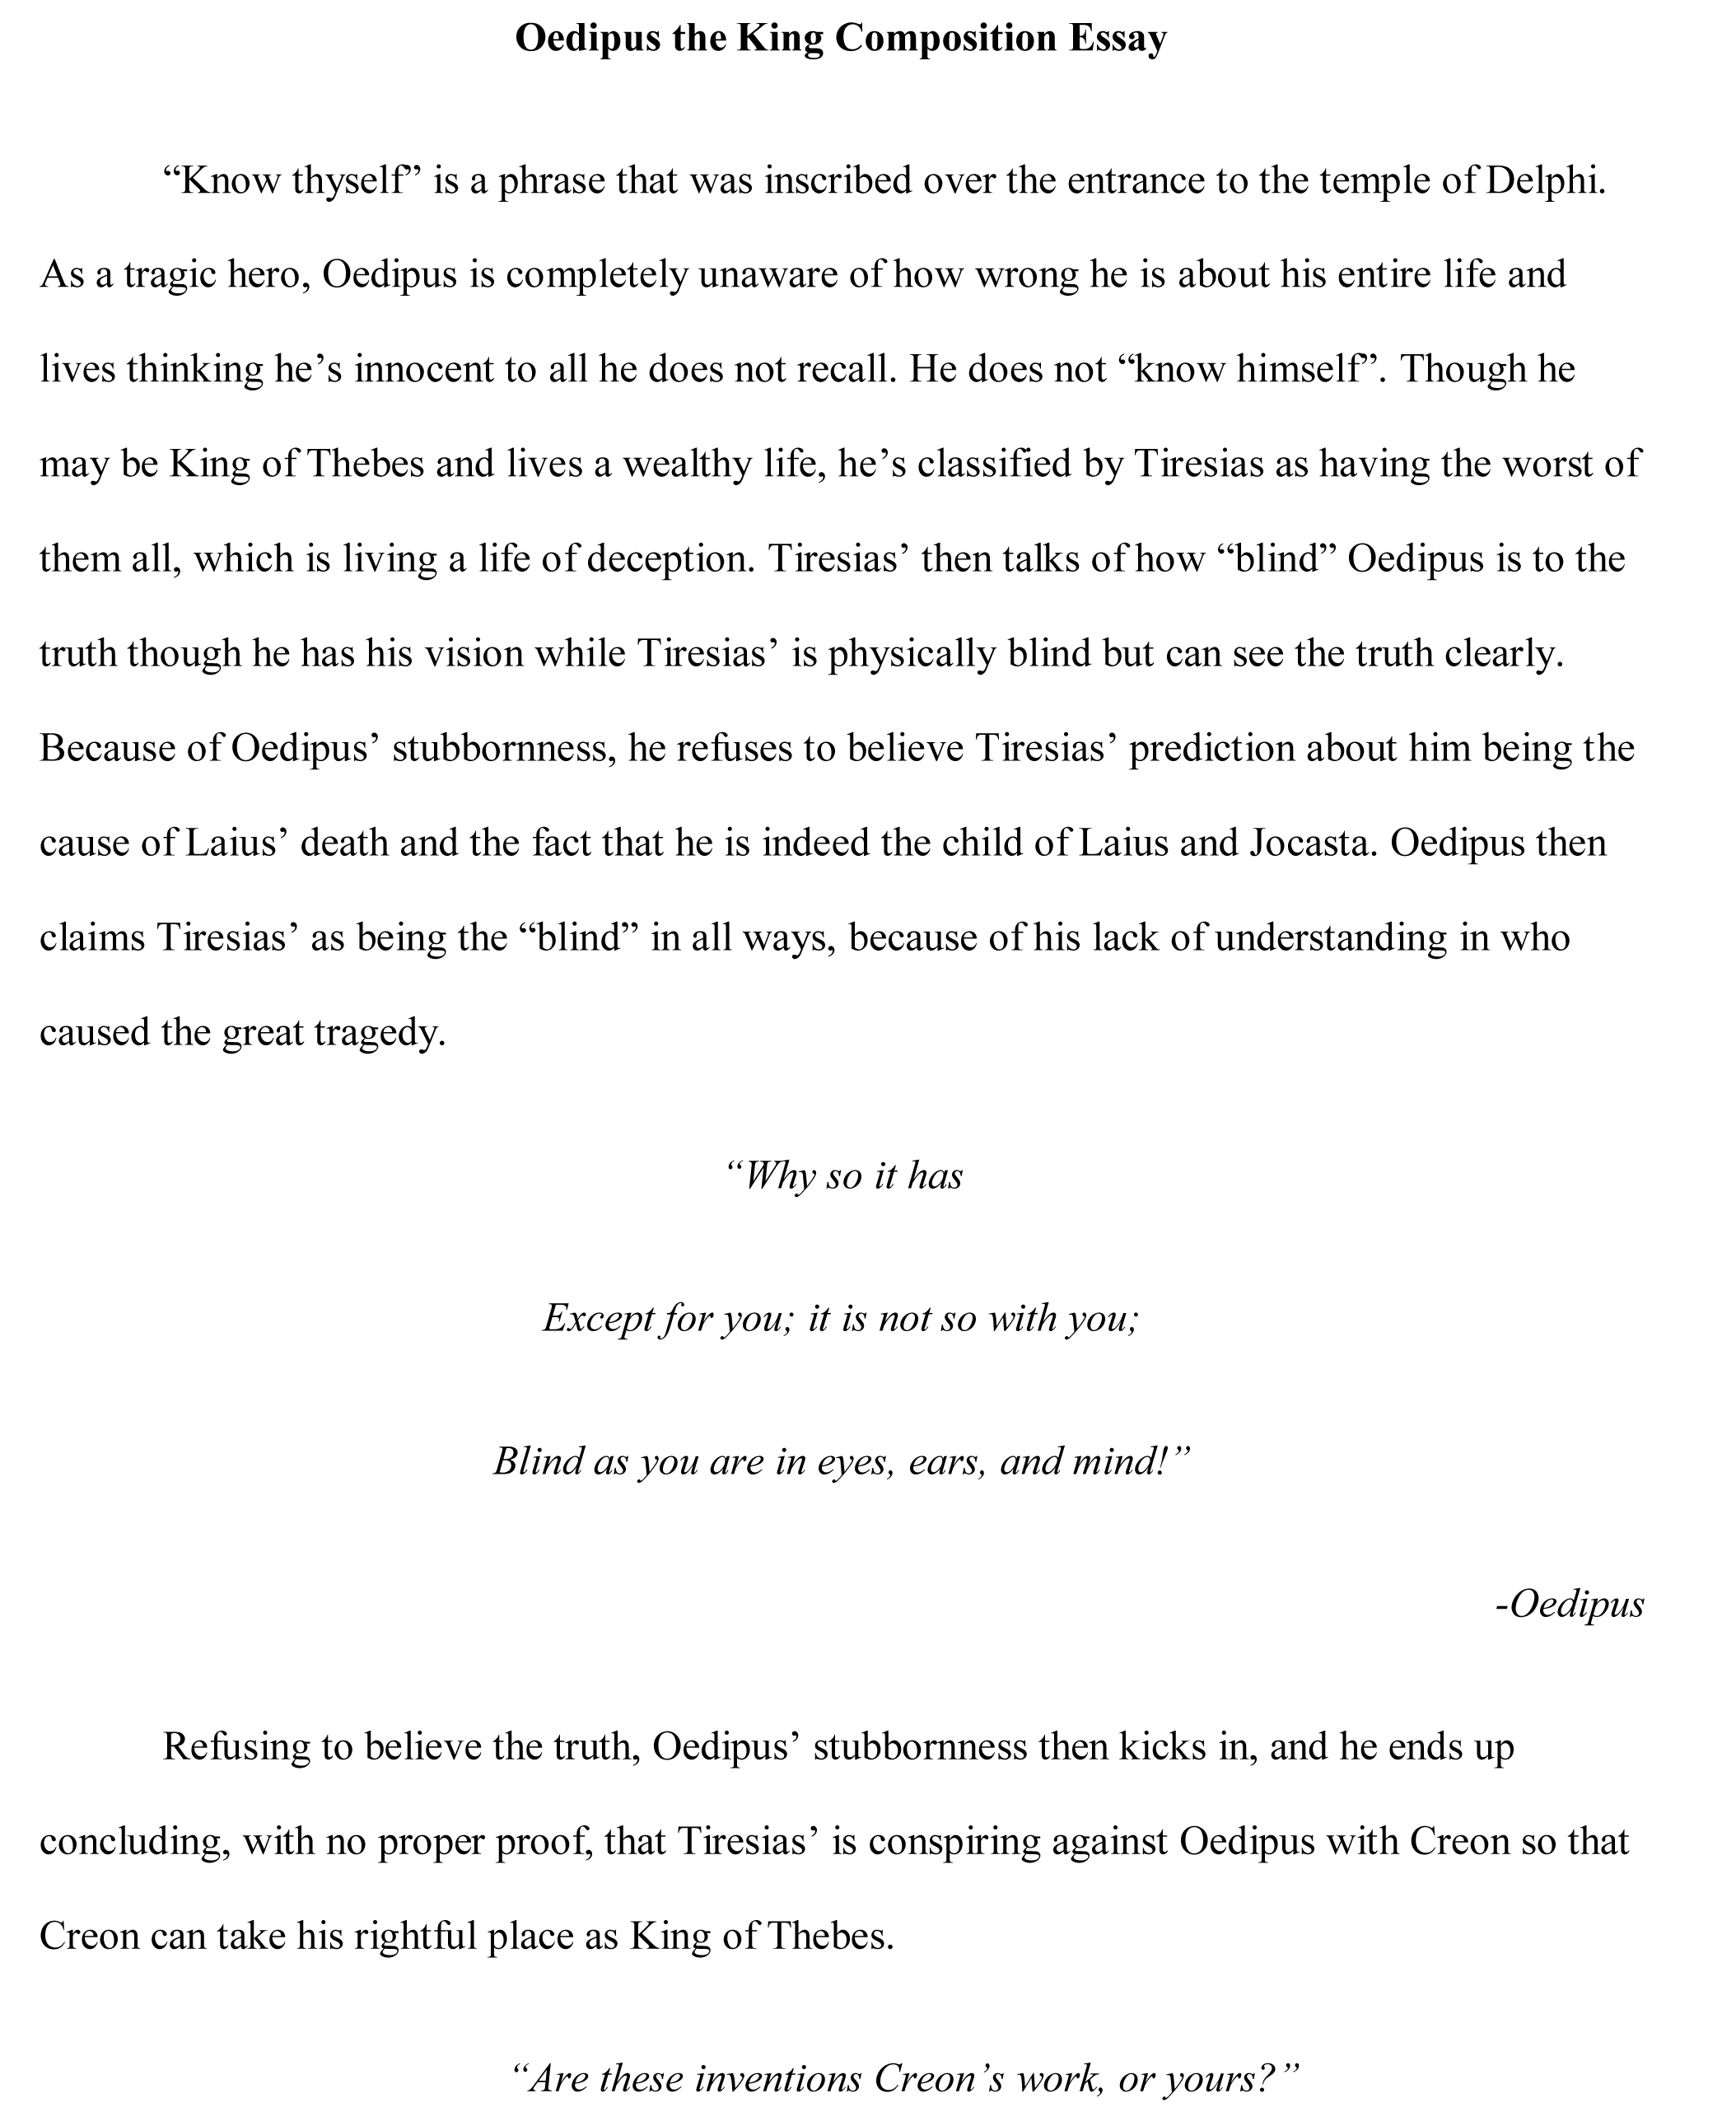 021 Oedipus Essay Free Sample Example Good Hook For Impressive A An About The Odyssey Writing Full